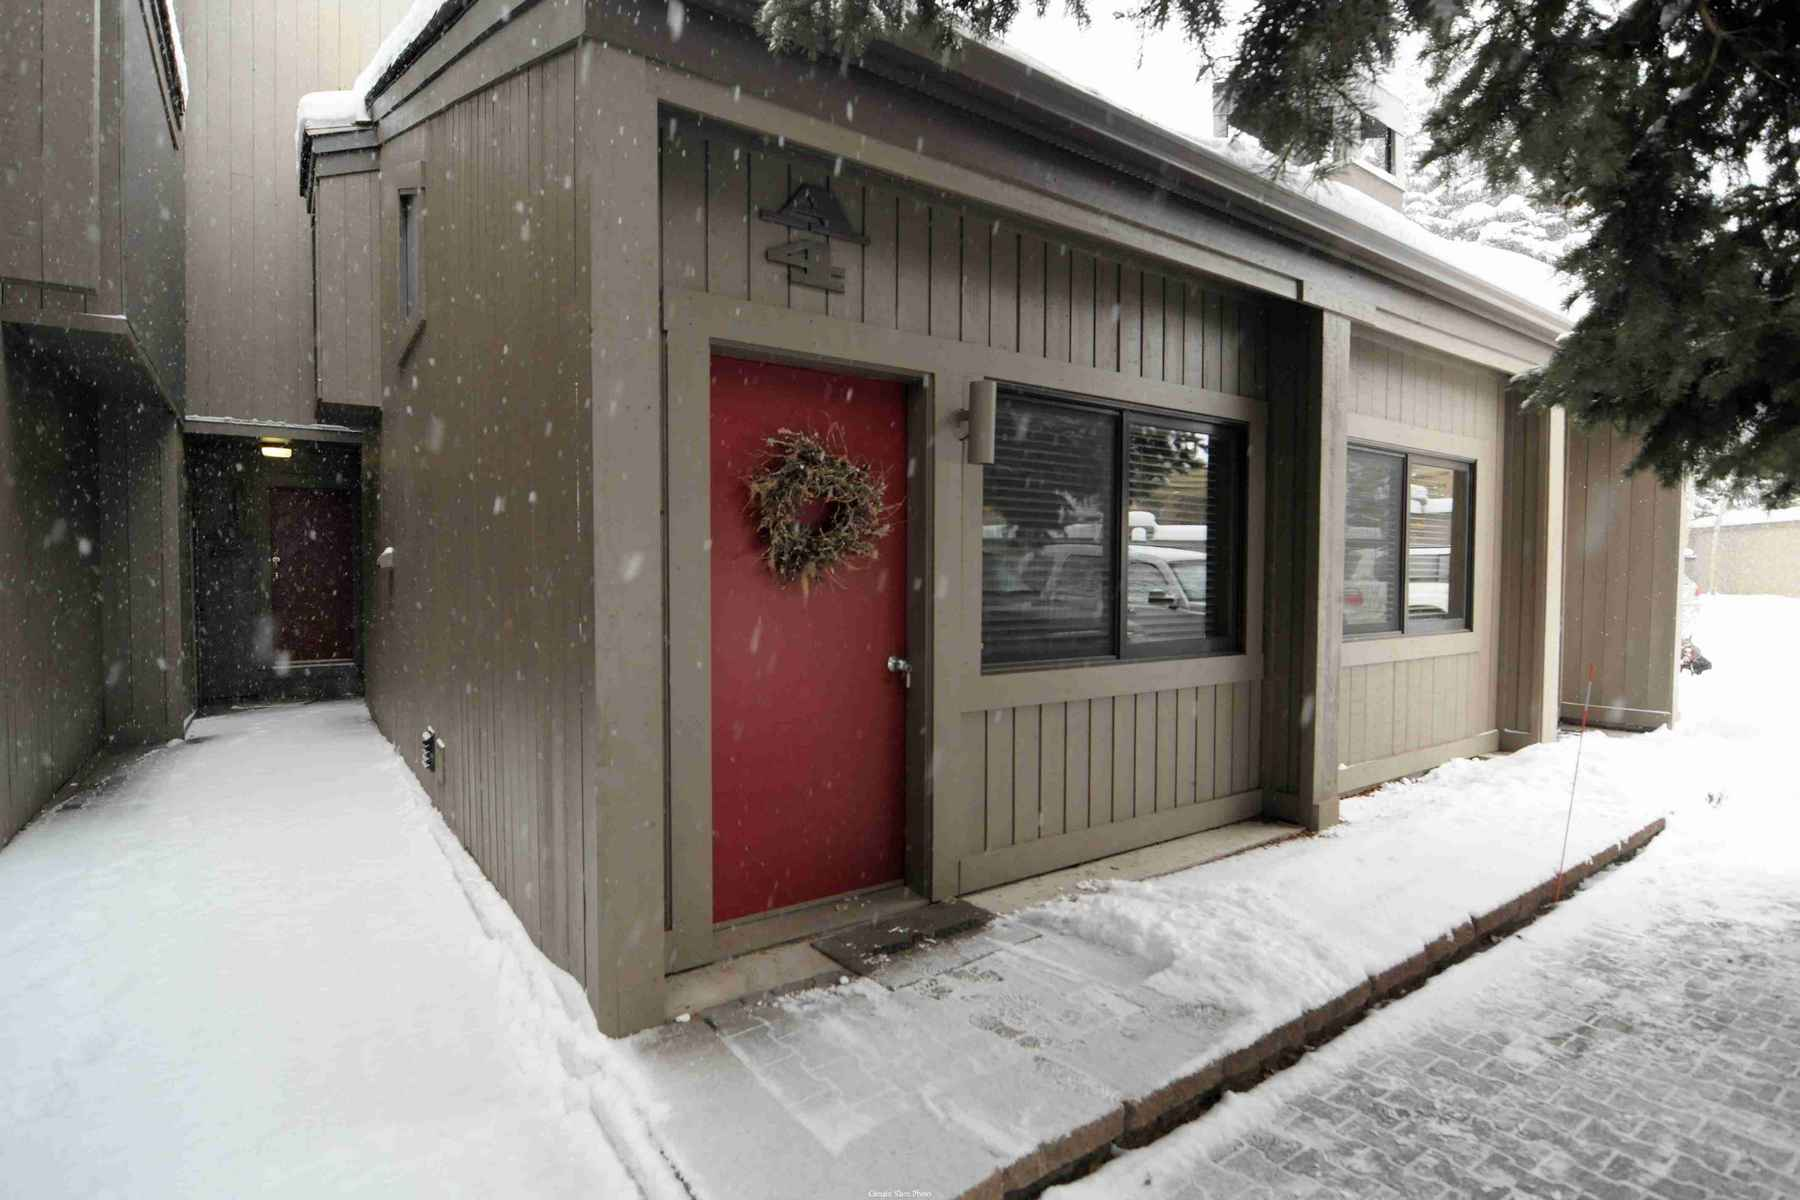 Condominium for Sale at Absolutely Adorable! 119 Picabo St #A4, Ketchum, Idaho, 83343 United States